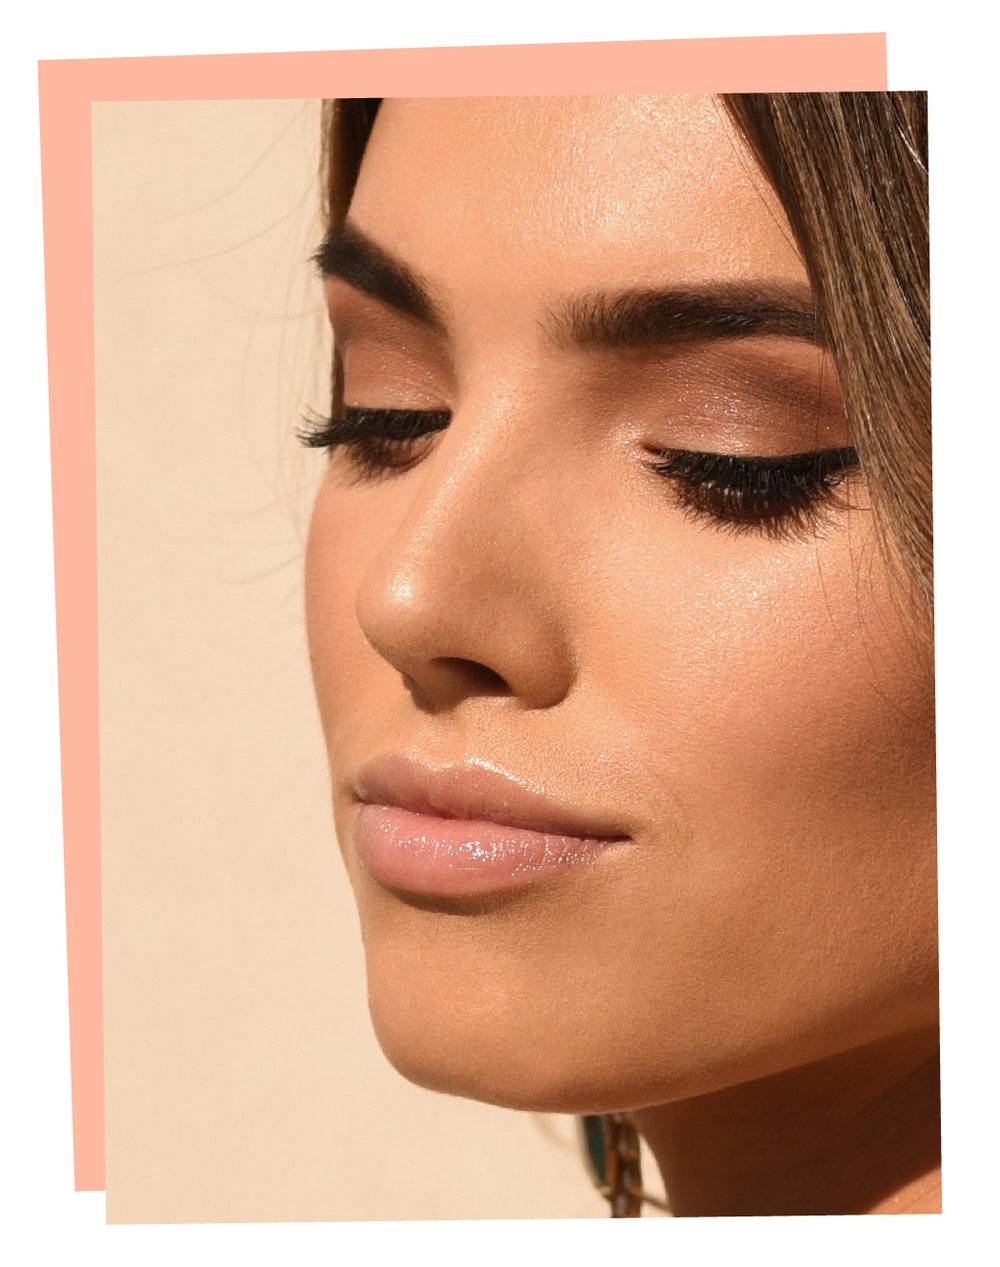 Lash Lifts & Tints - Get the lashes lifted high for weeks without even touching your mascara tube. Tinted or not tinted, up to you. Trust us, you will get addicted.